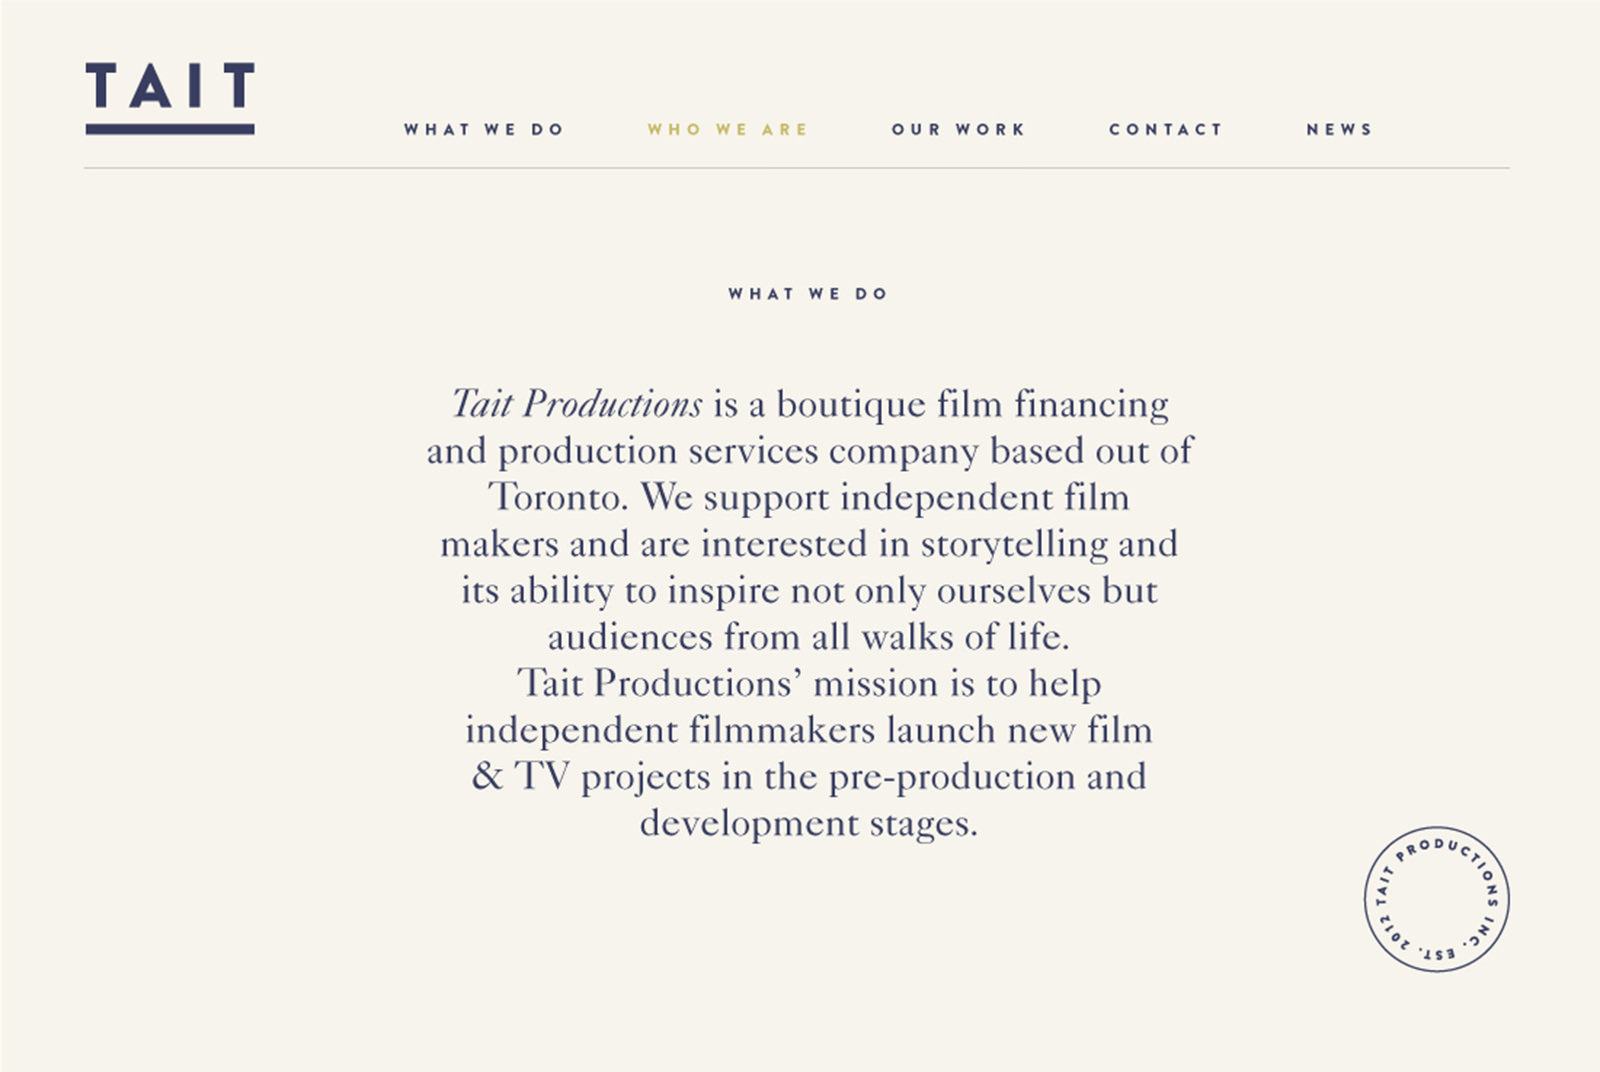 TAIT Productions